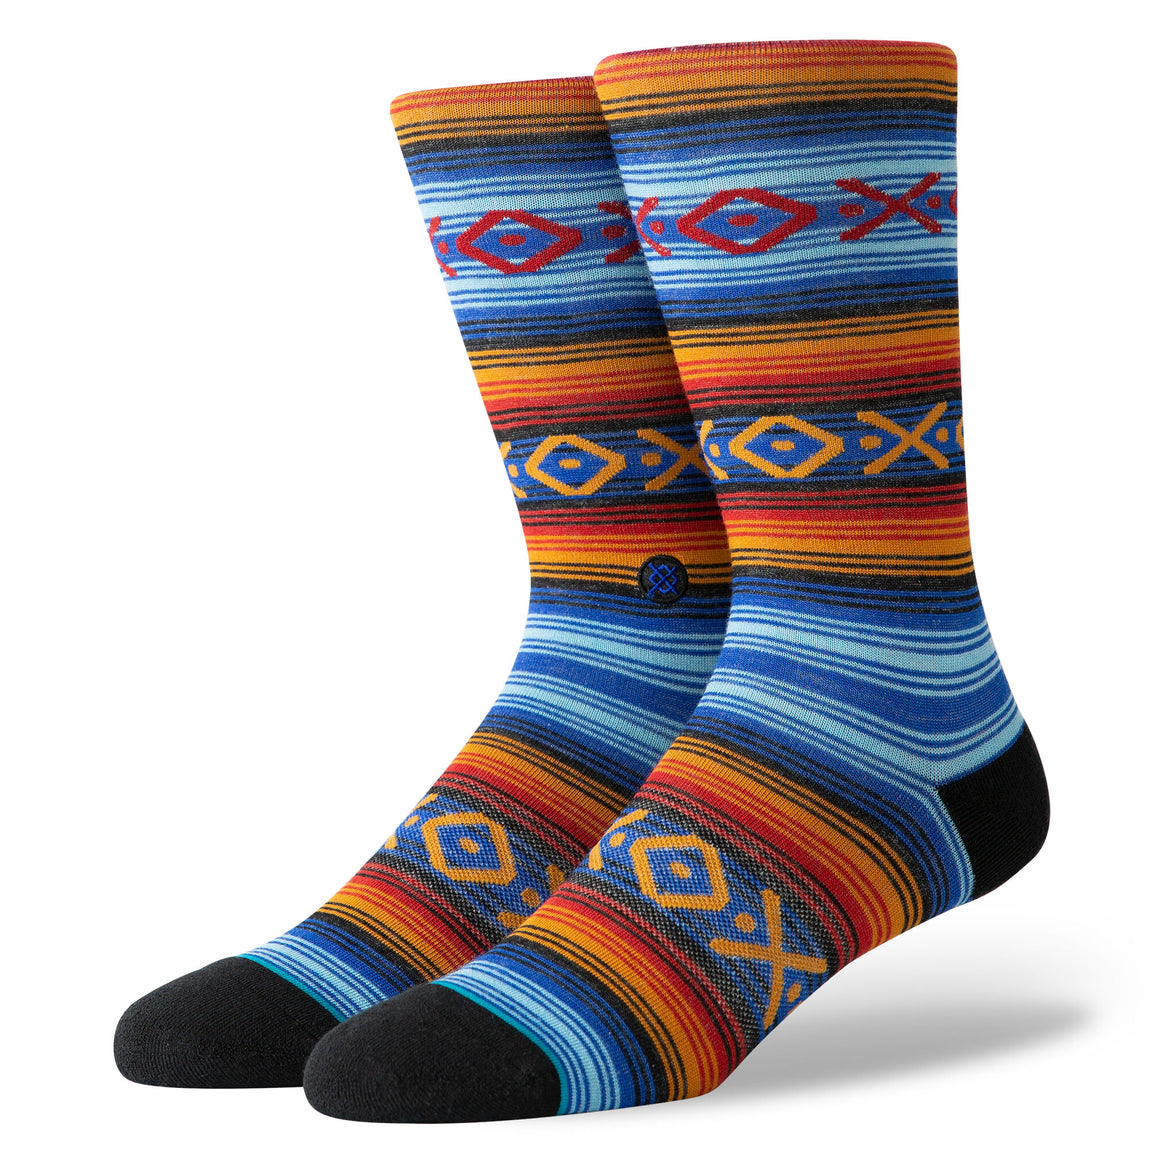 Stance Slap Stick Socks (Royal Blue) - Stance Slap Stick Socks (Royal Blue) -